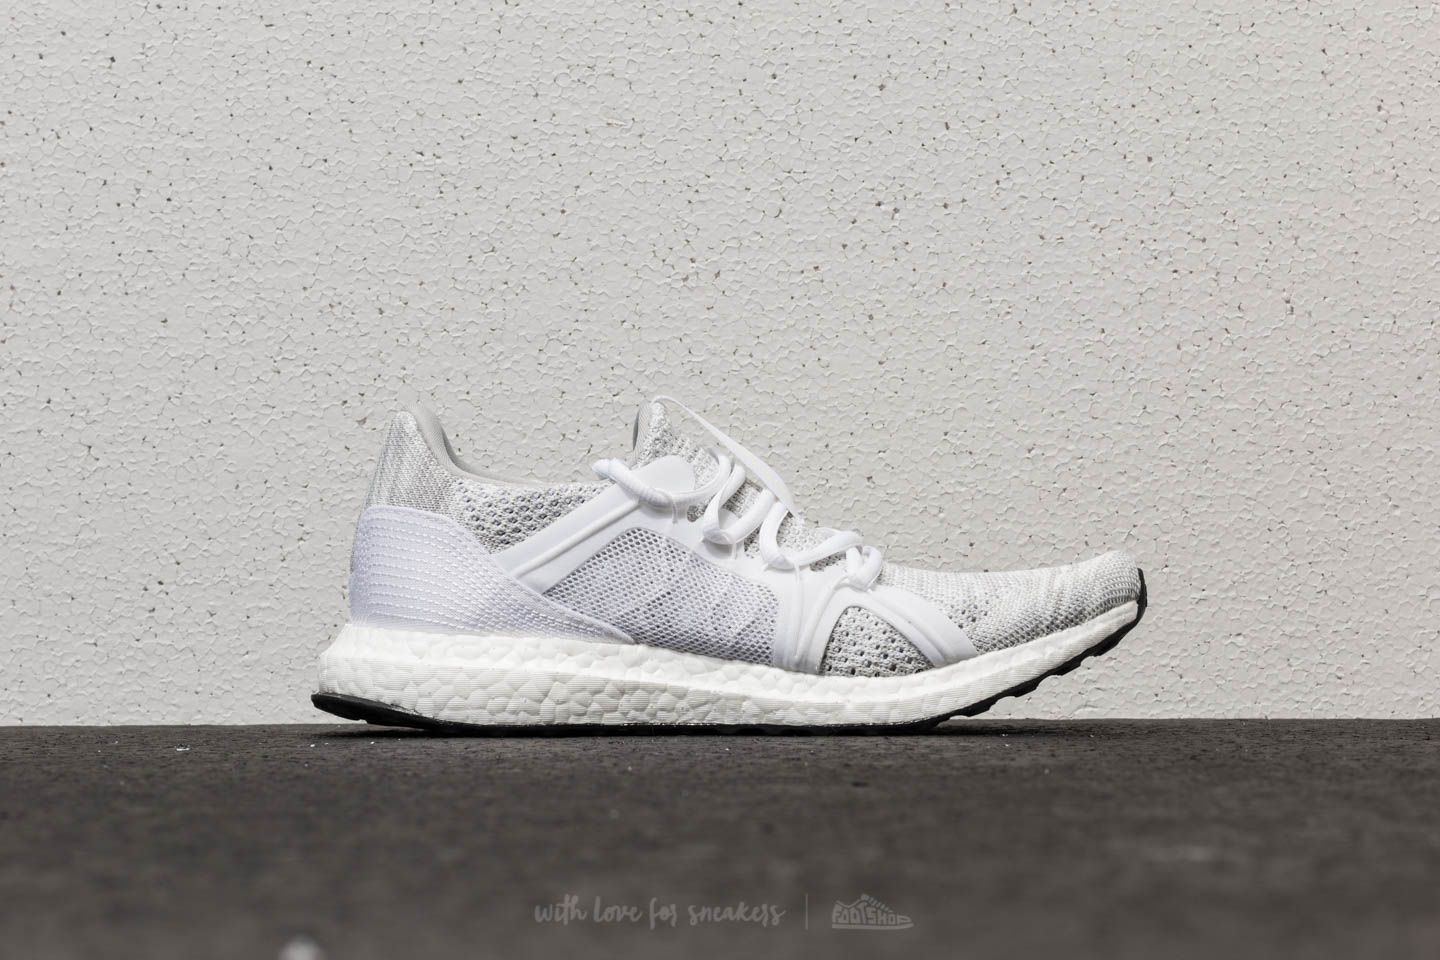 b6feb006ddb adidas x Stella McCartney Ultraboost Parley Stone  Core White  Mirror Blue  at a great